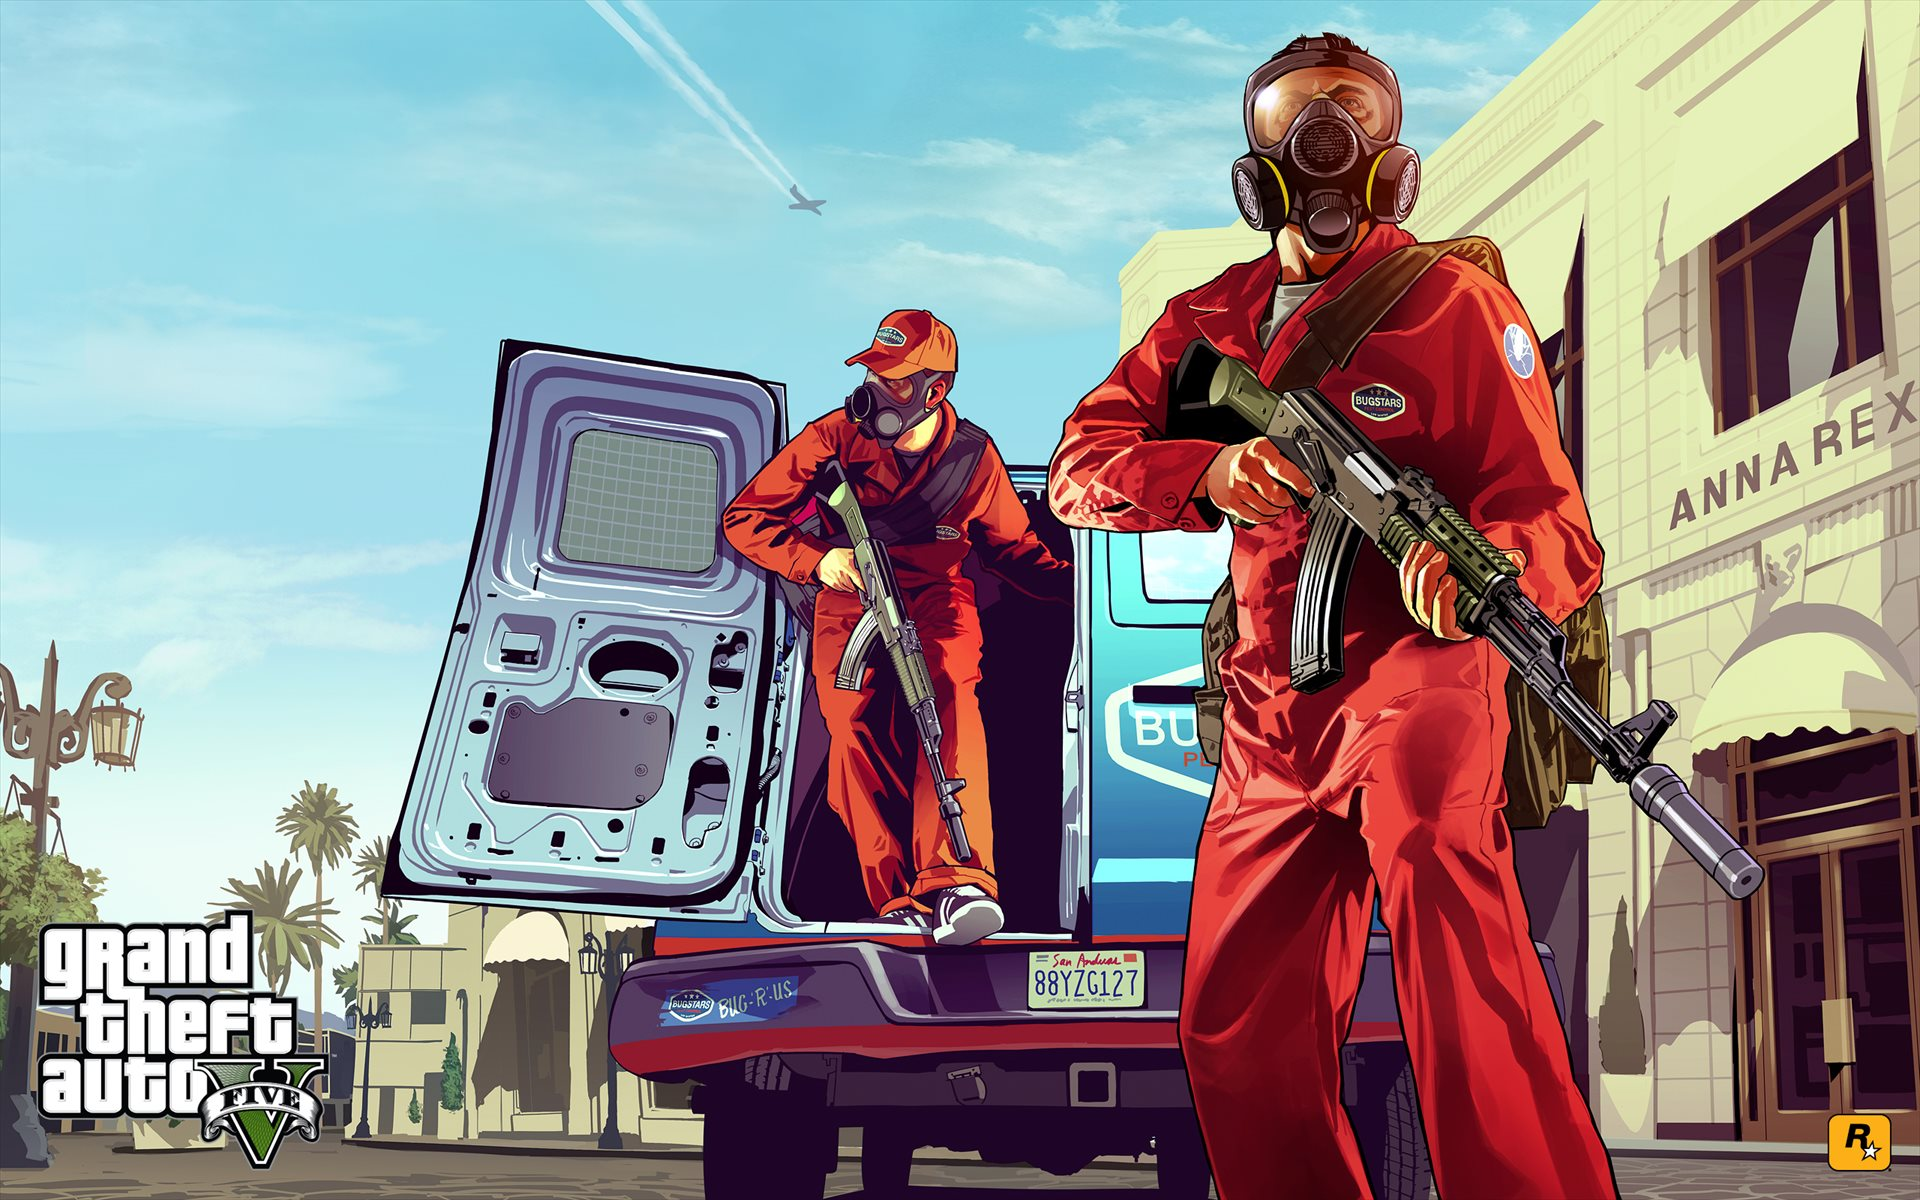 gta 5 wallpaper 04 150x150 Download Cool GTA 5 Wallpapers 1920x1200